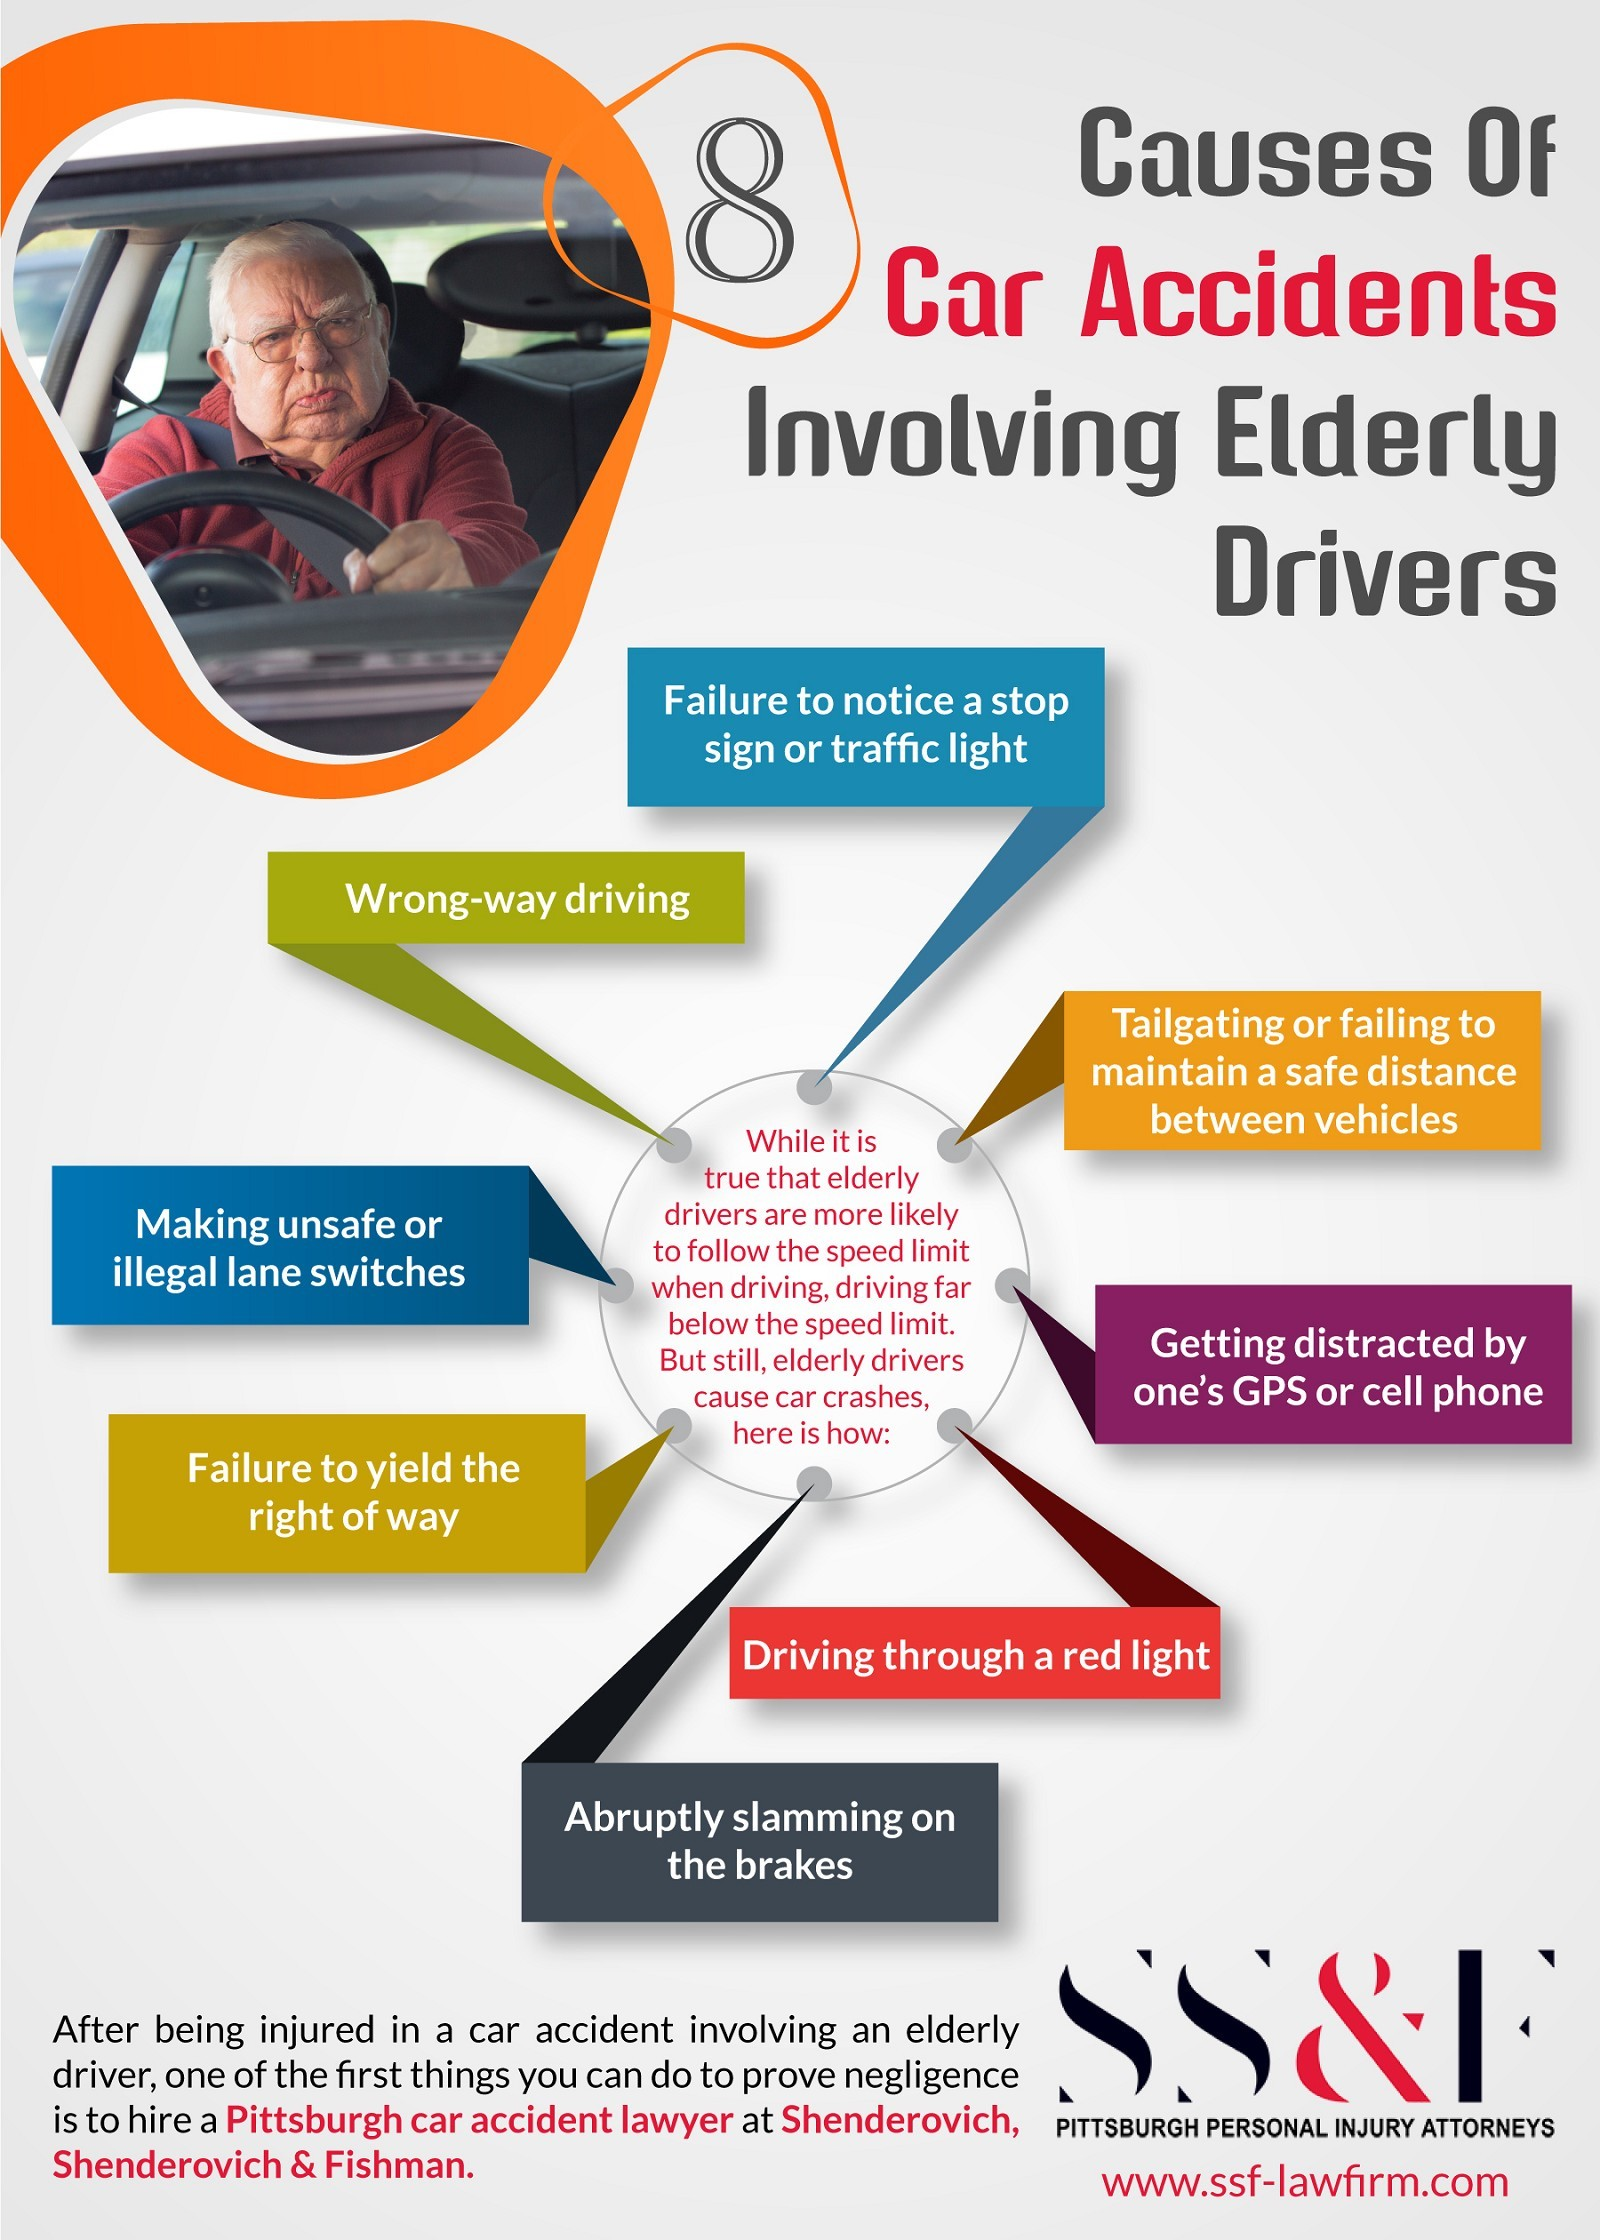 8 Causes Of Car Accidents Involving Elderly Drivers